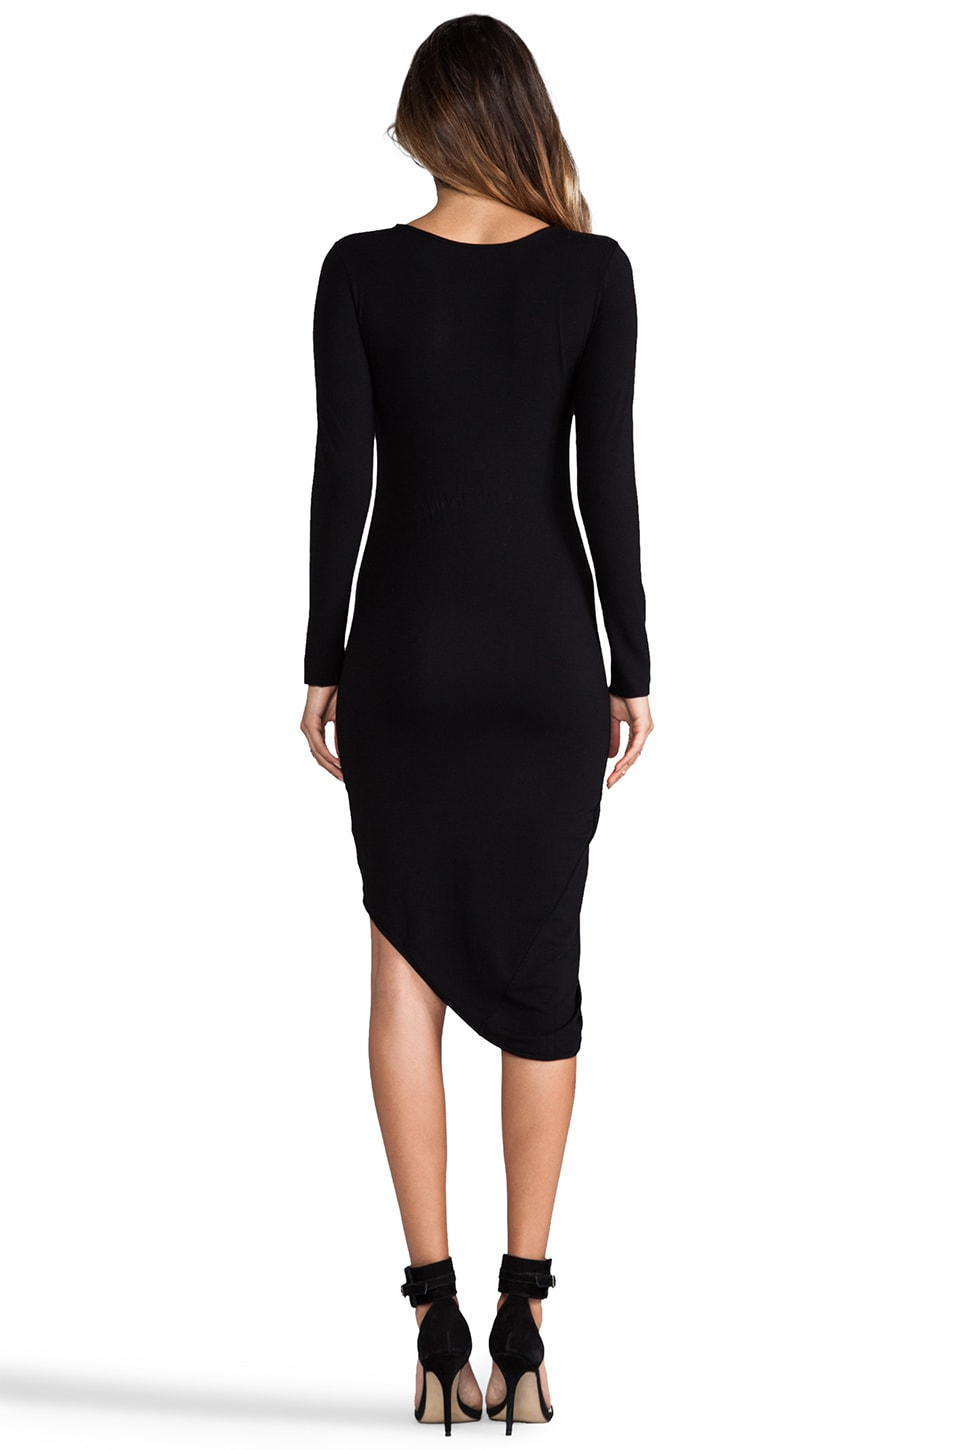 Indah Salju Long Sleeve Sexy Dress in Black